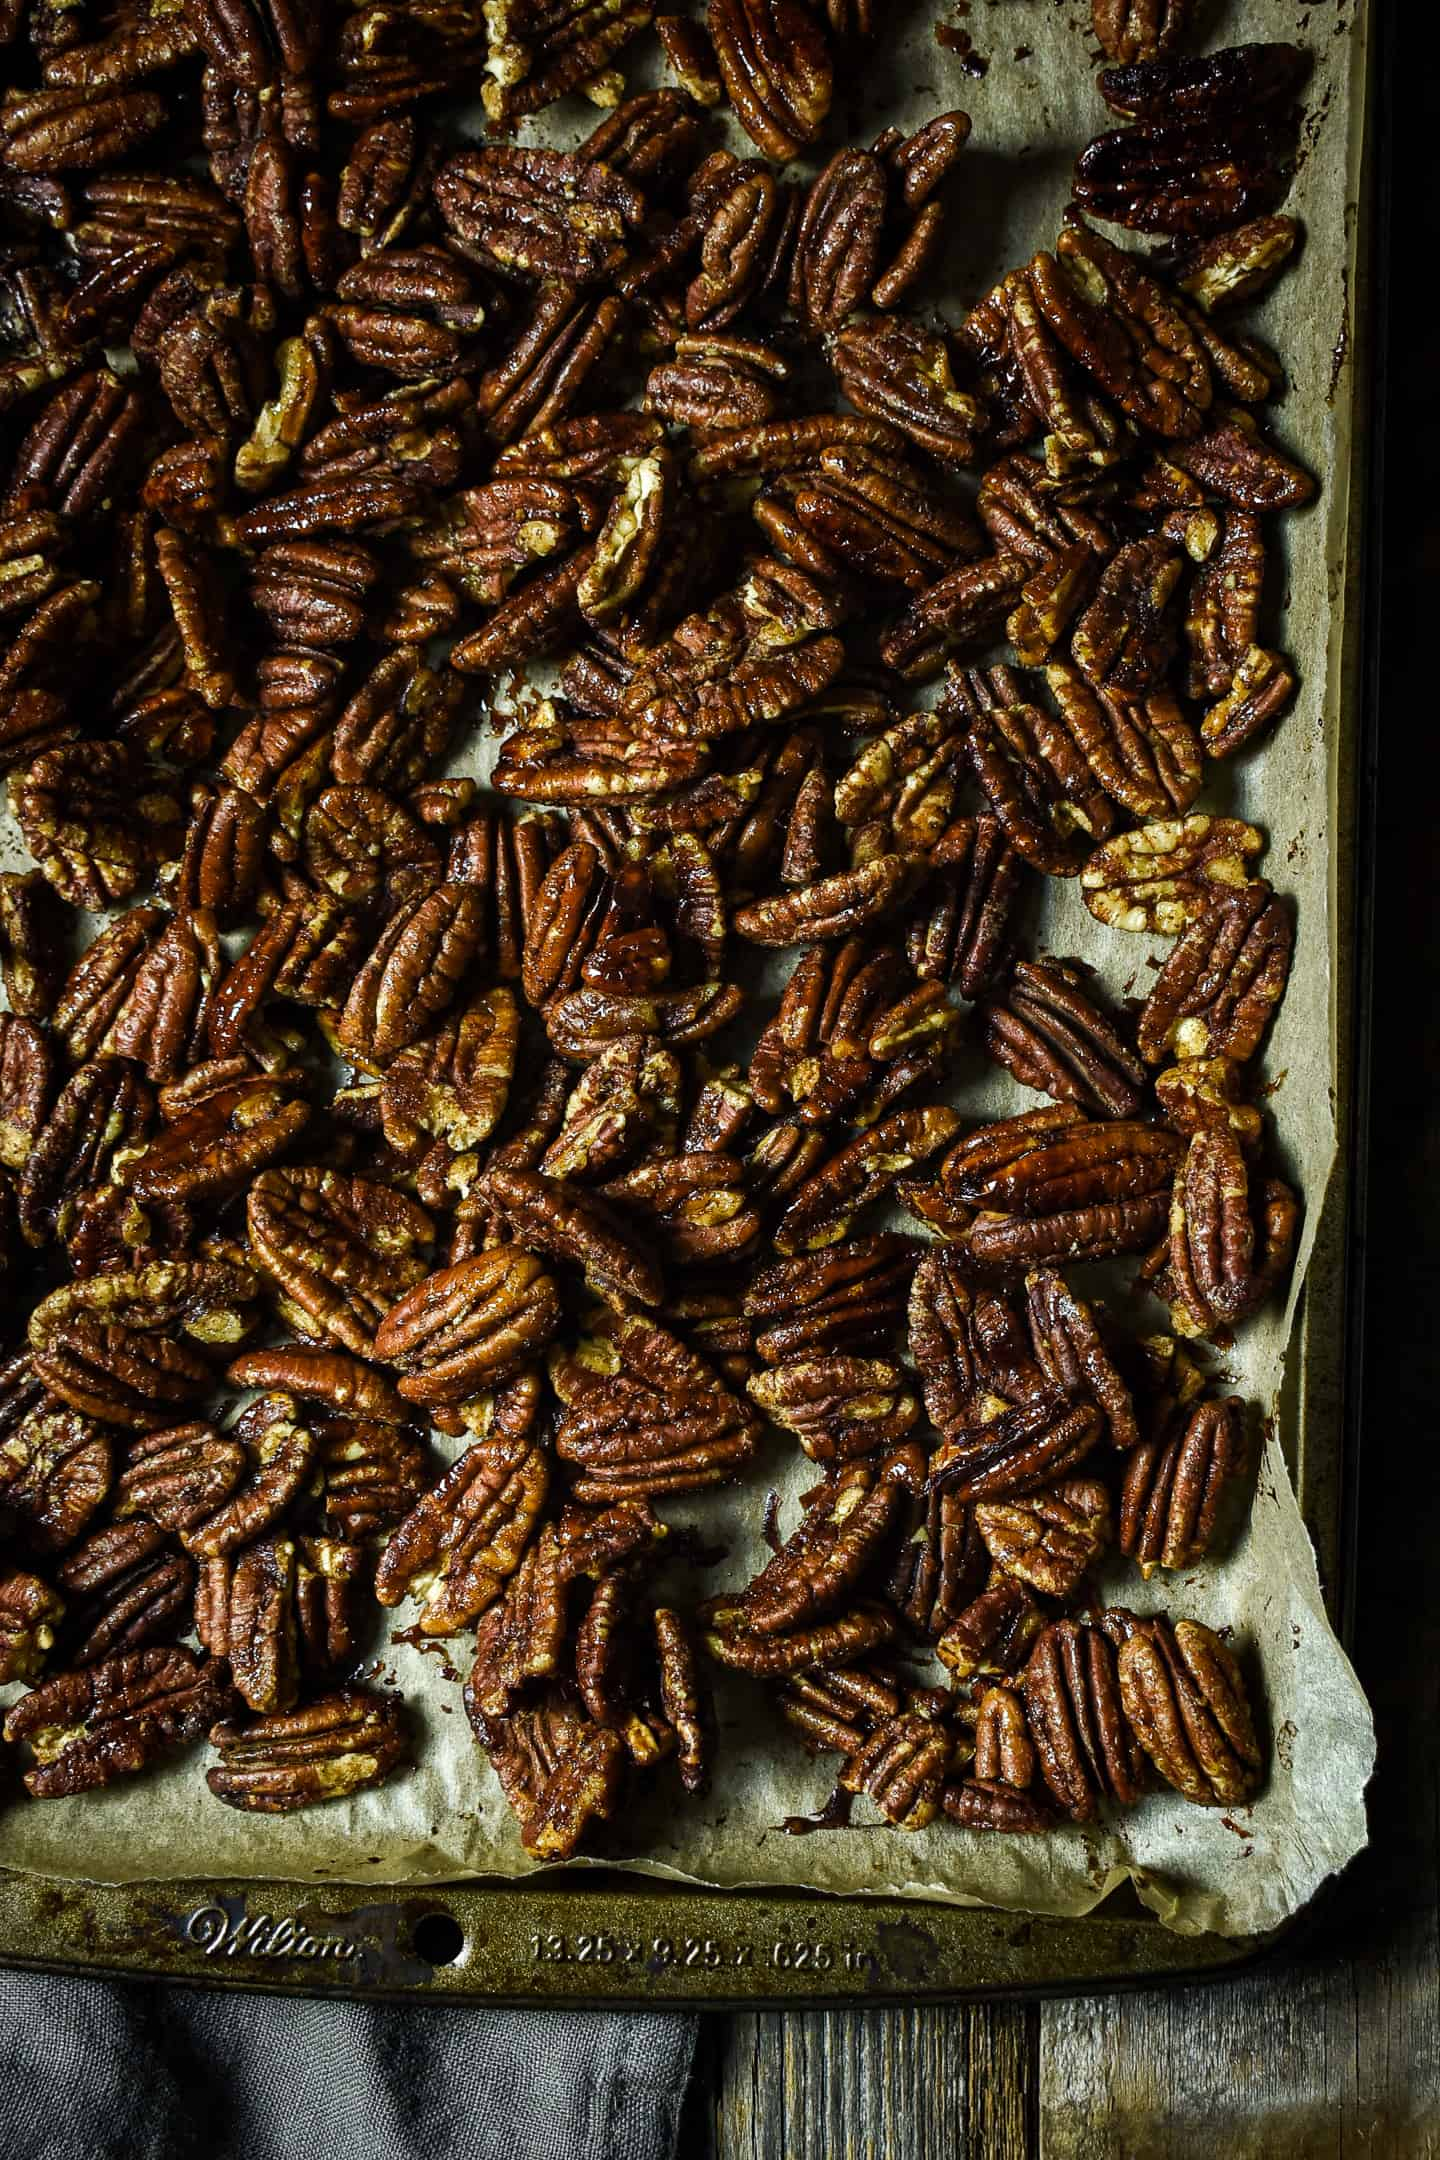 Candied pecans on baking sheet.